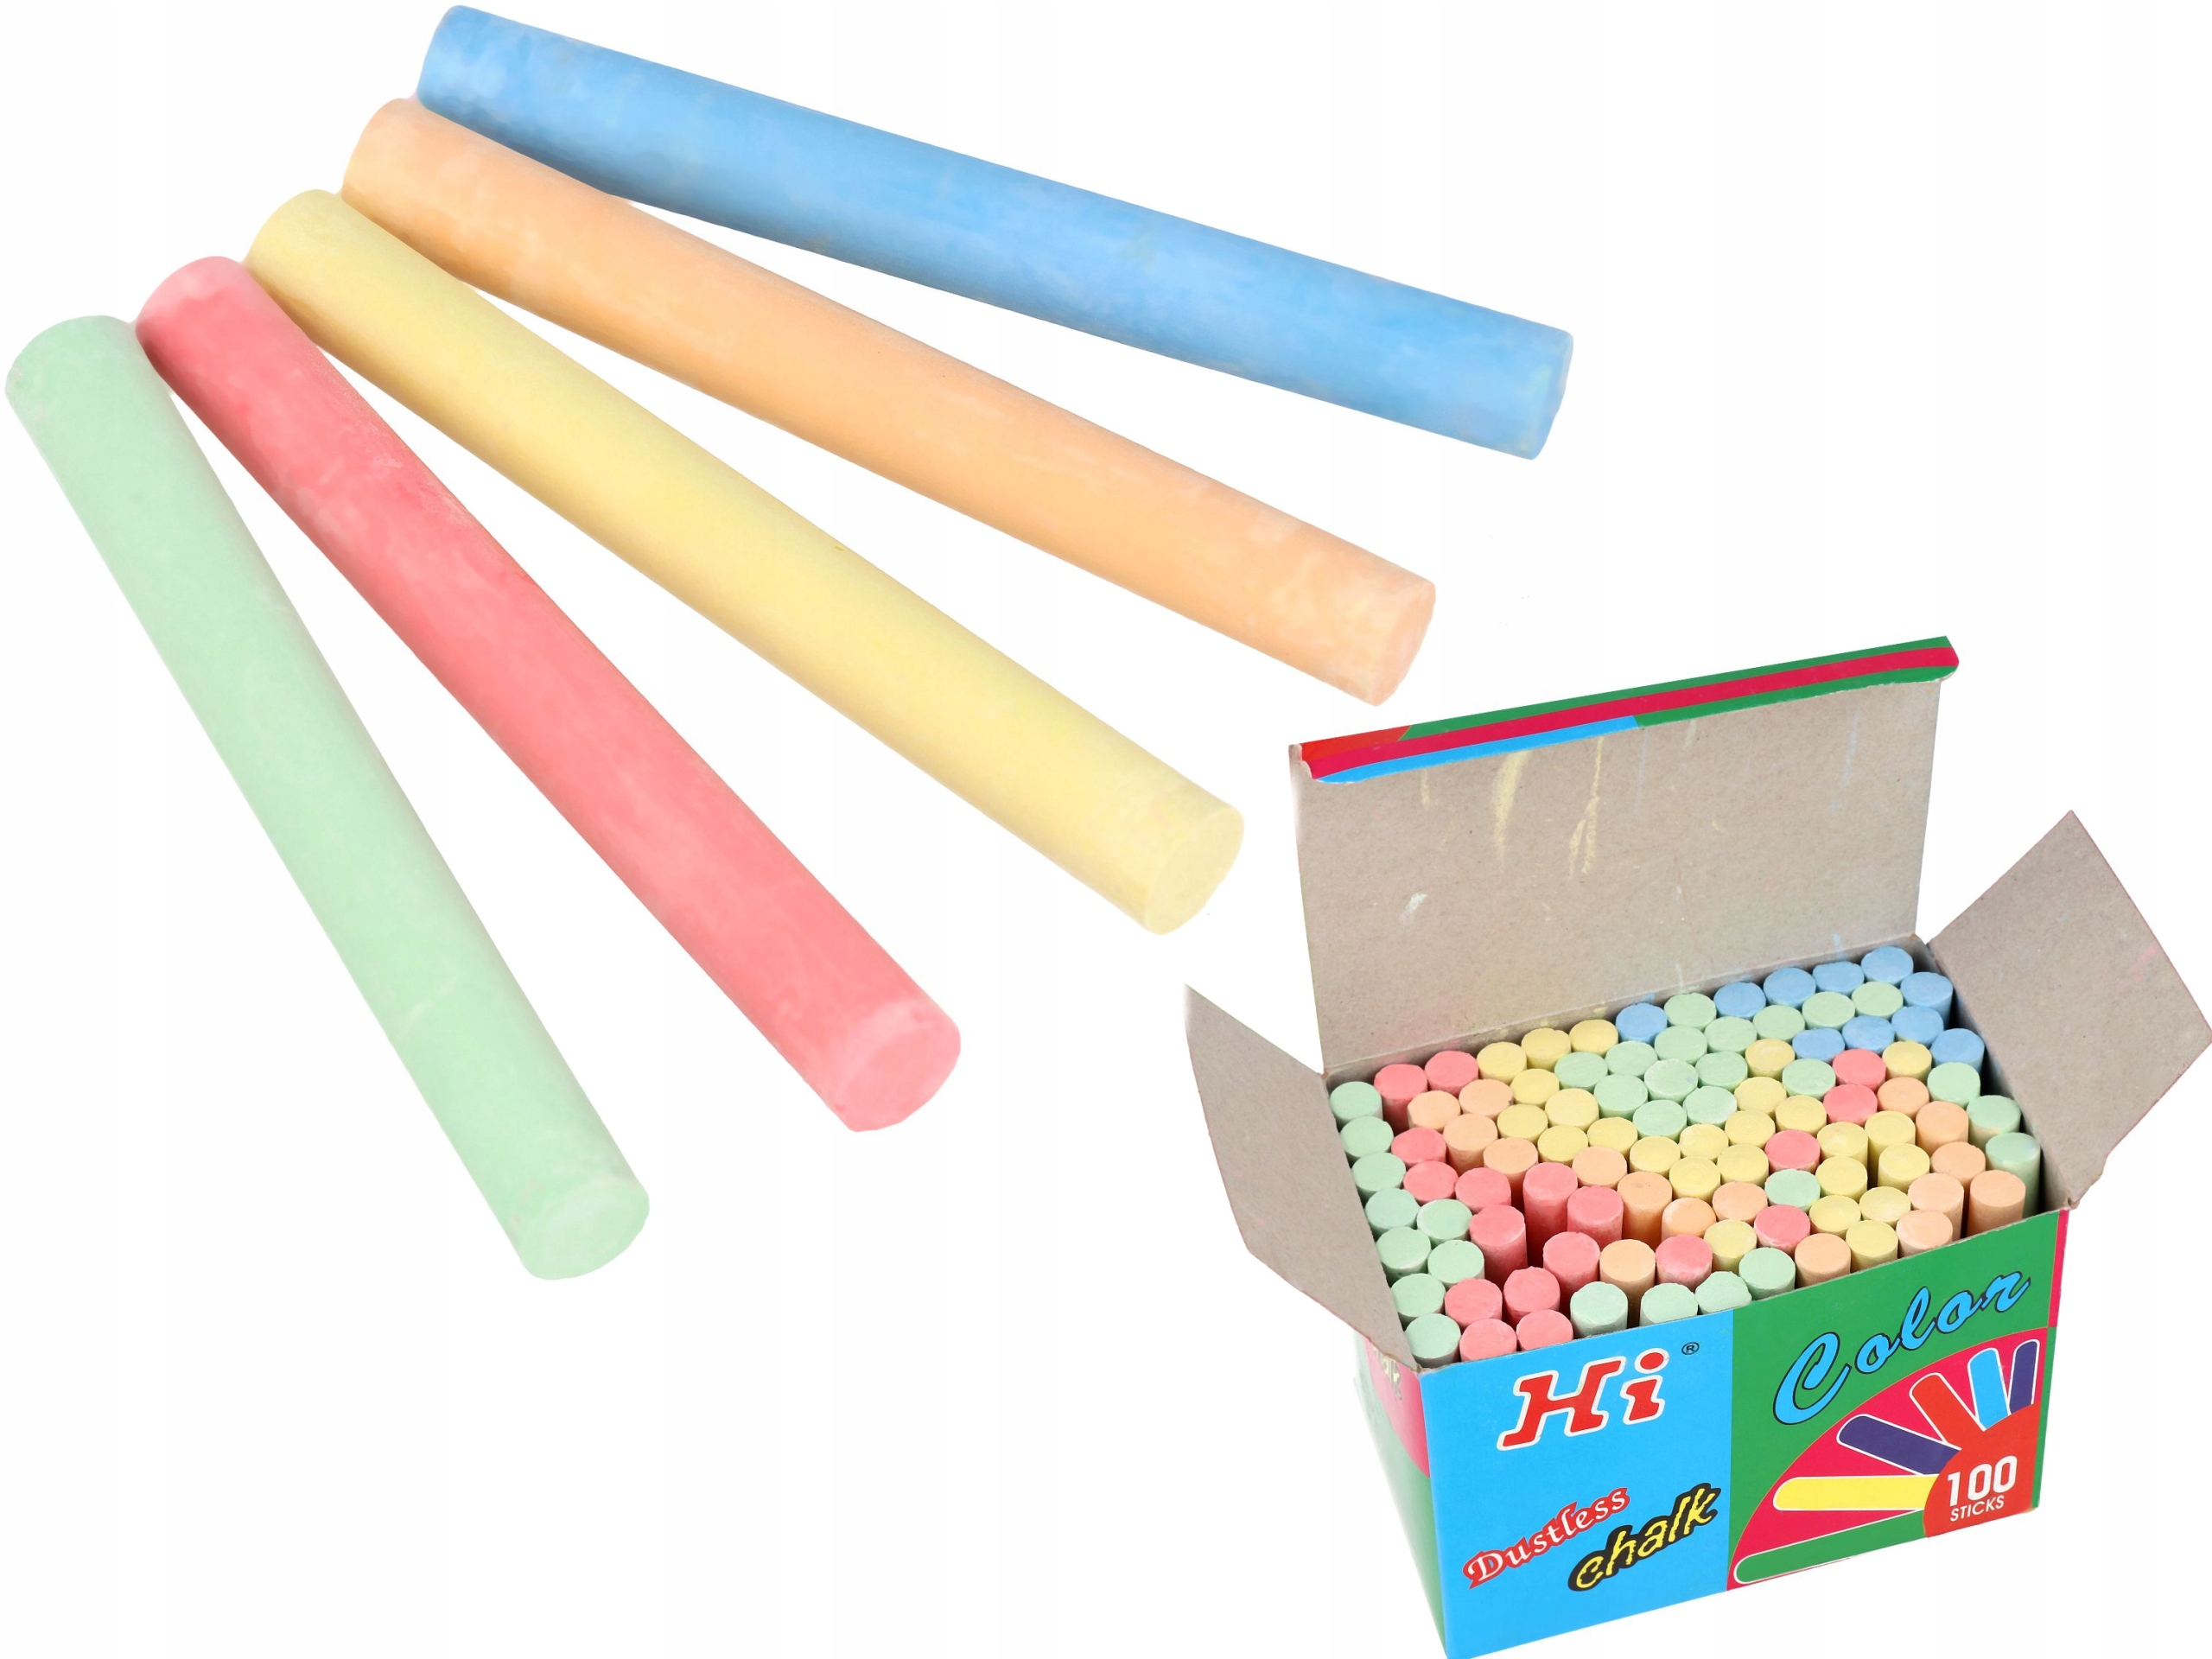 Item CHALK BOARDS ARE ROUND, COLOR 5 COLORS, 100 PCS